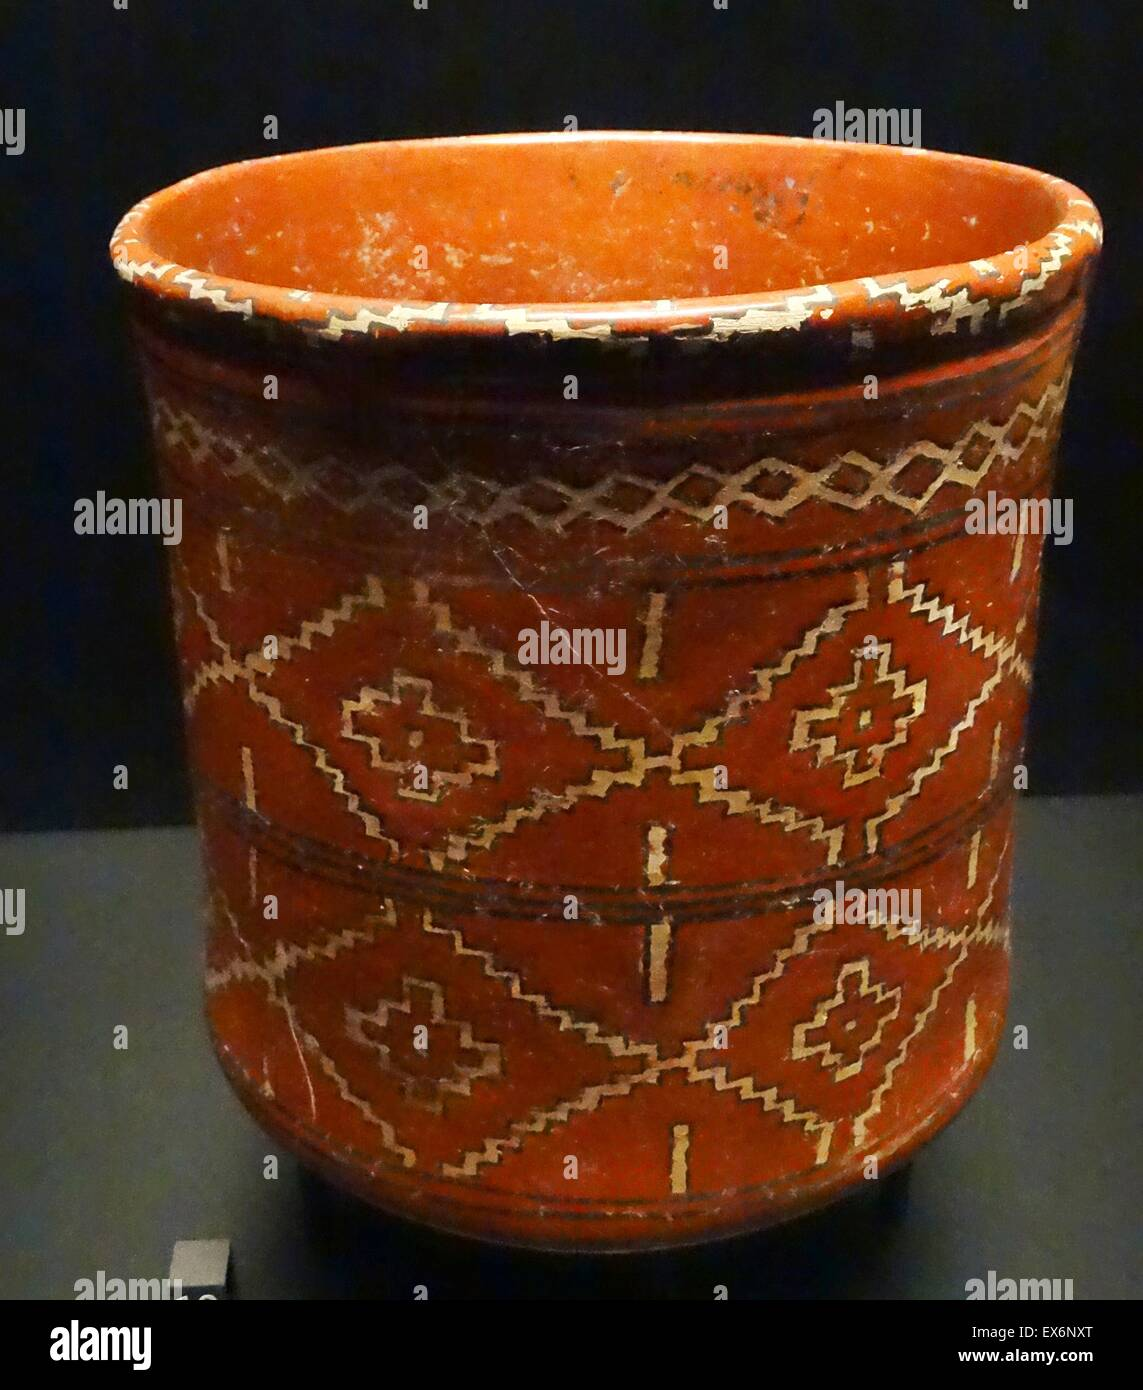 Ceramic vase with a decorative pattern, from the Mexican state of Guanajuato, Mexico - Stock Image